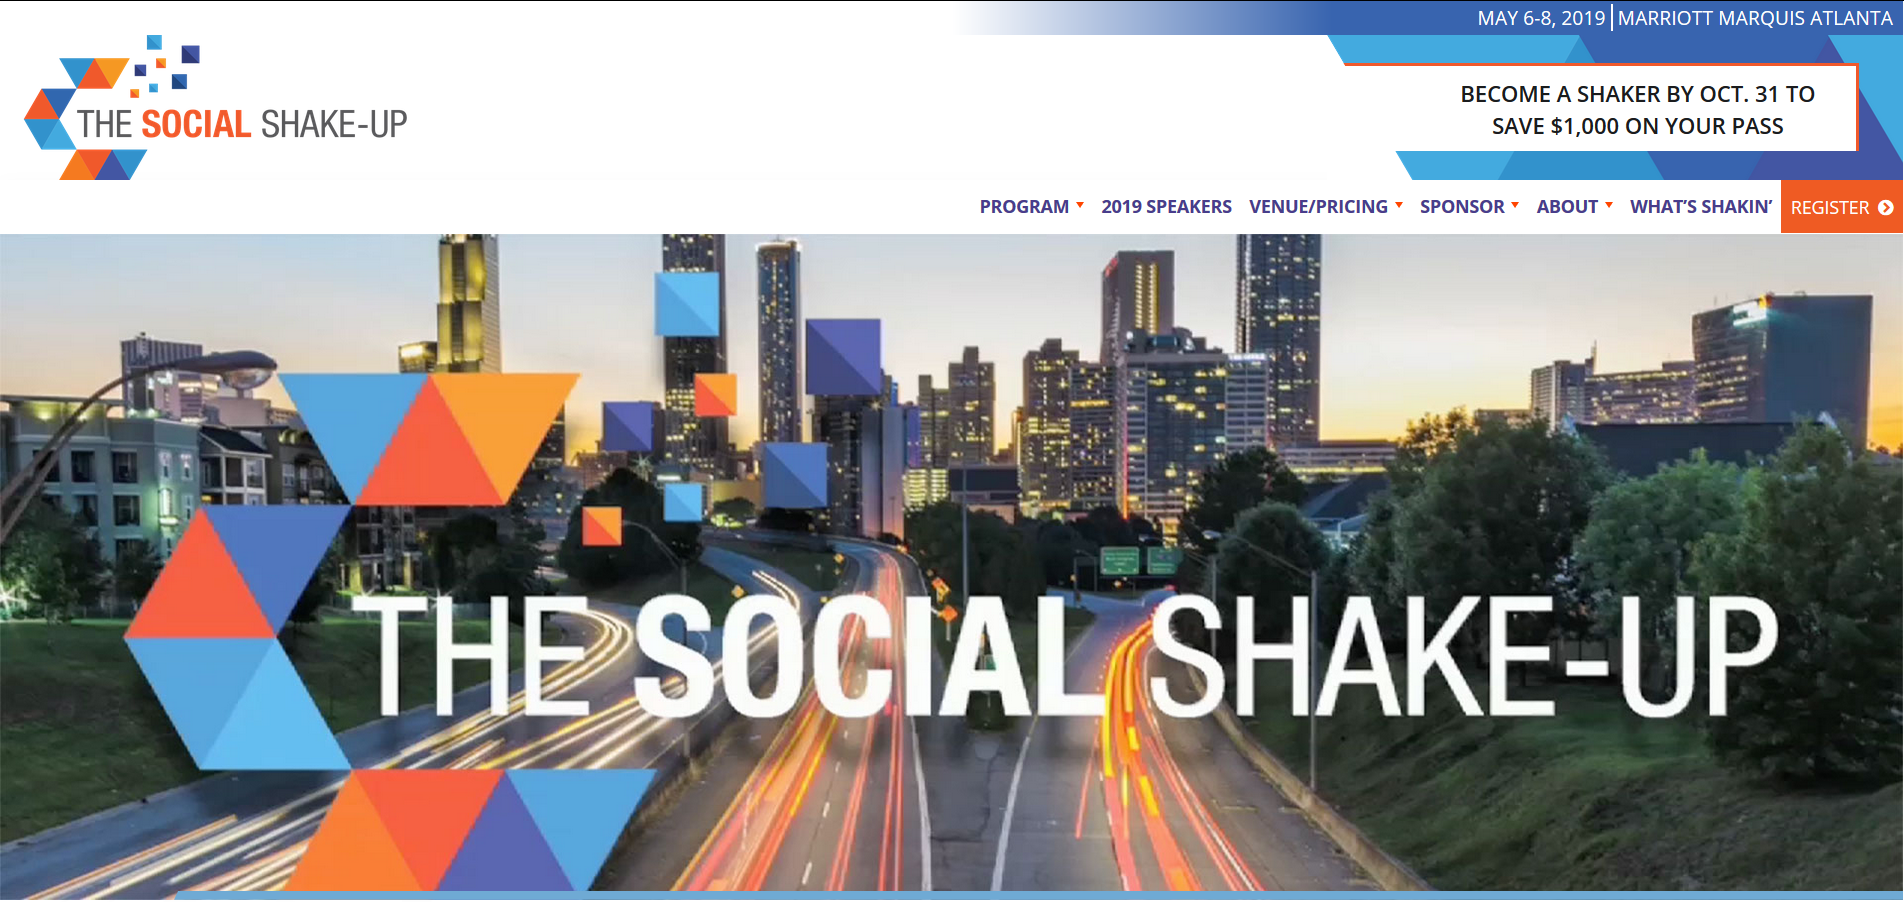 The Social Shake-Up is held in Atlanta